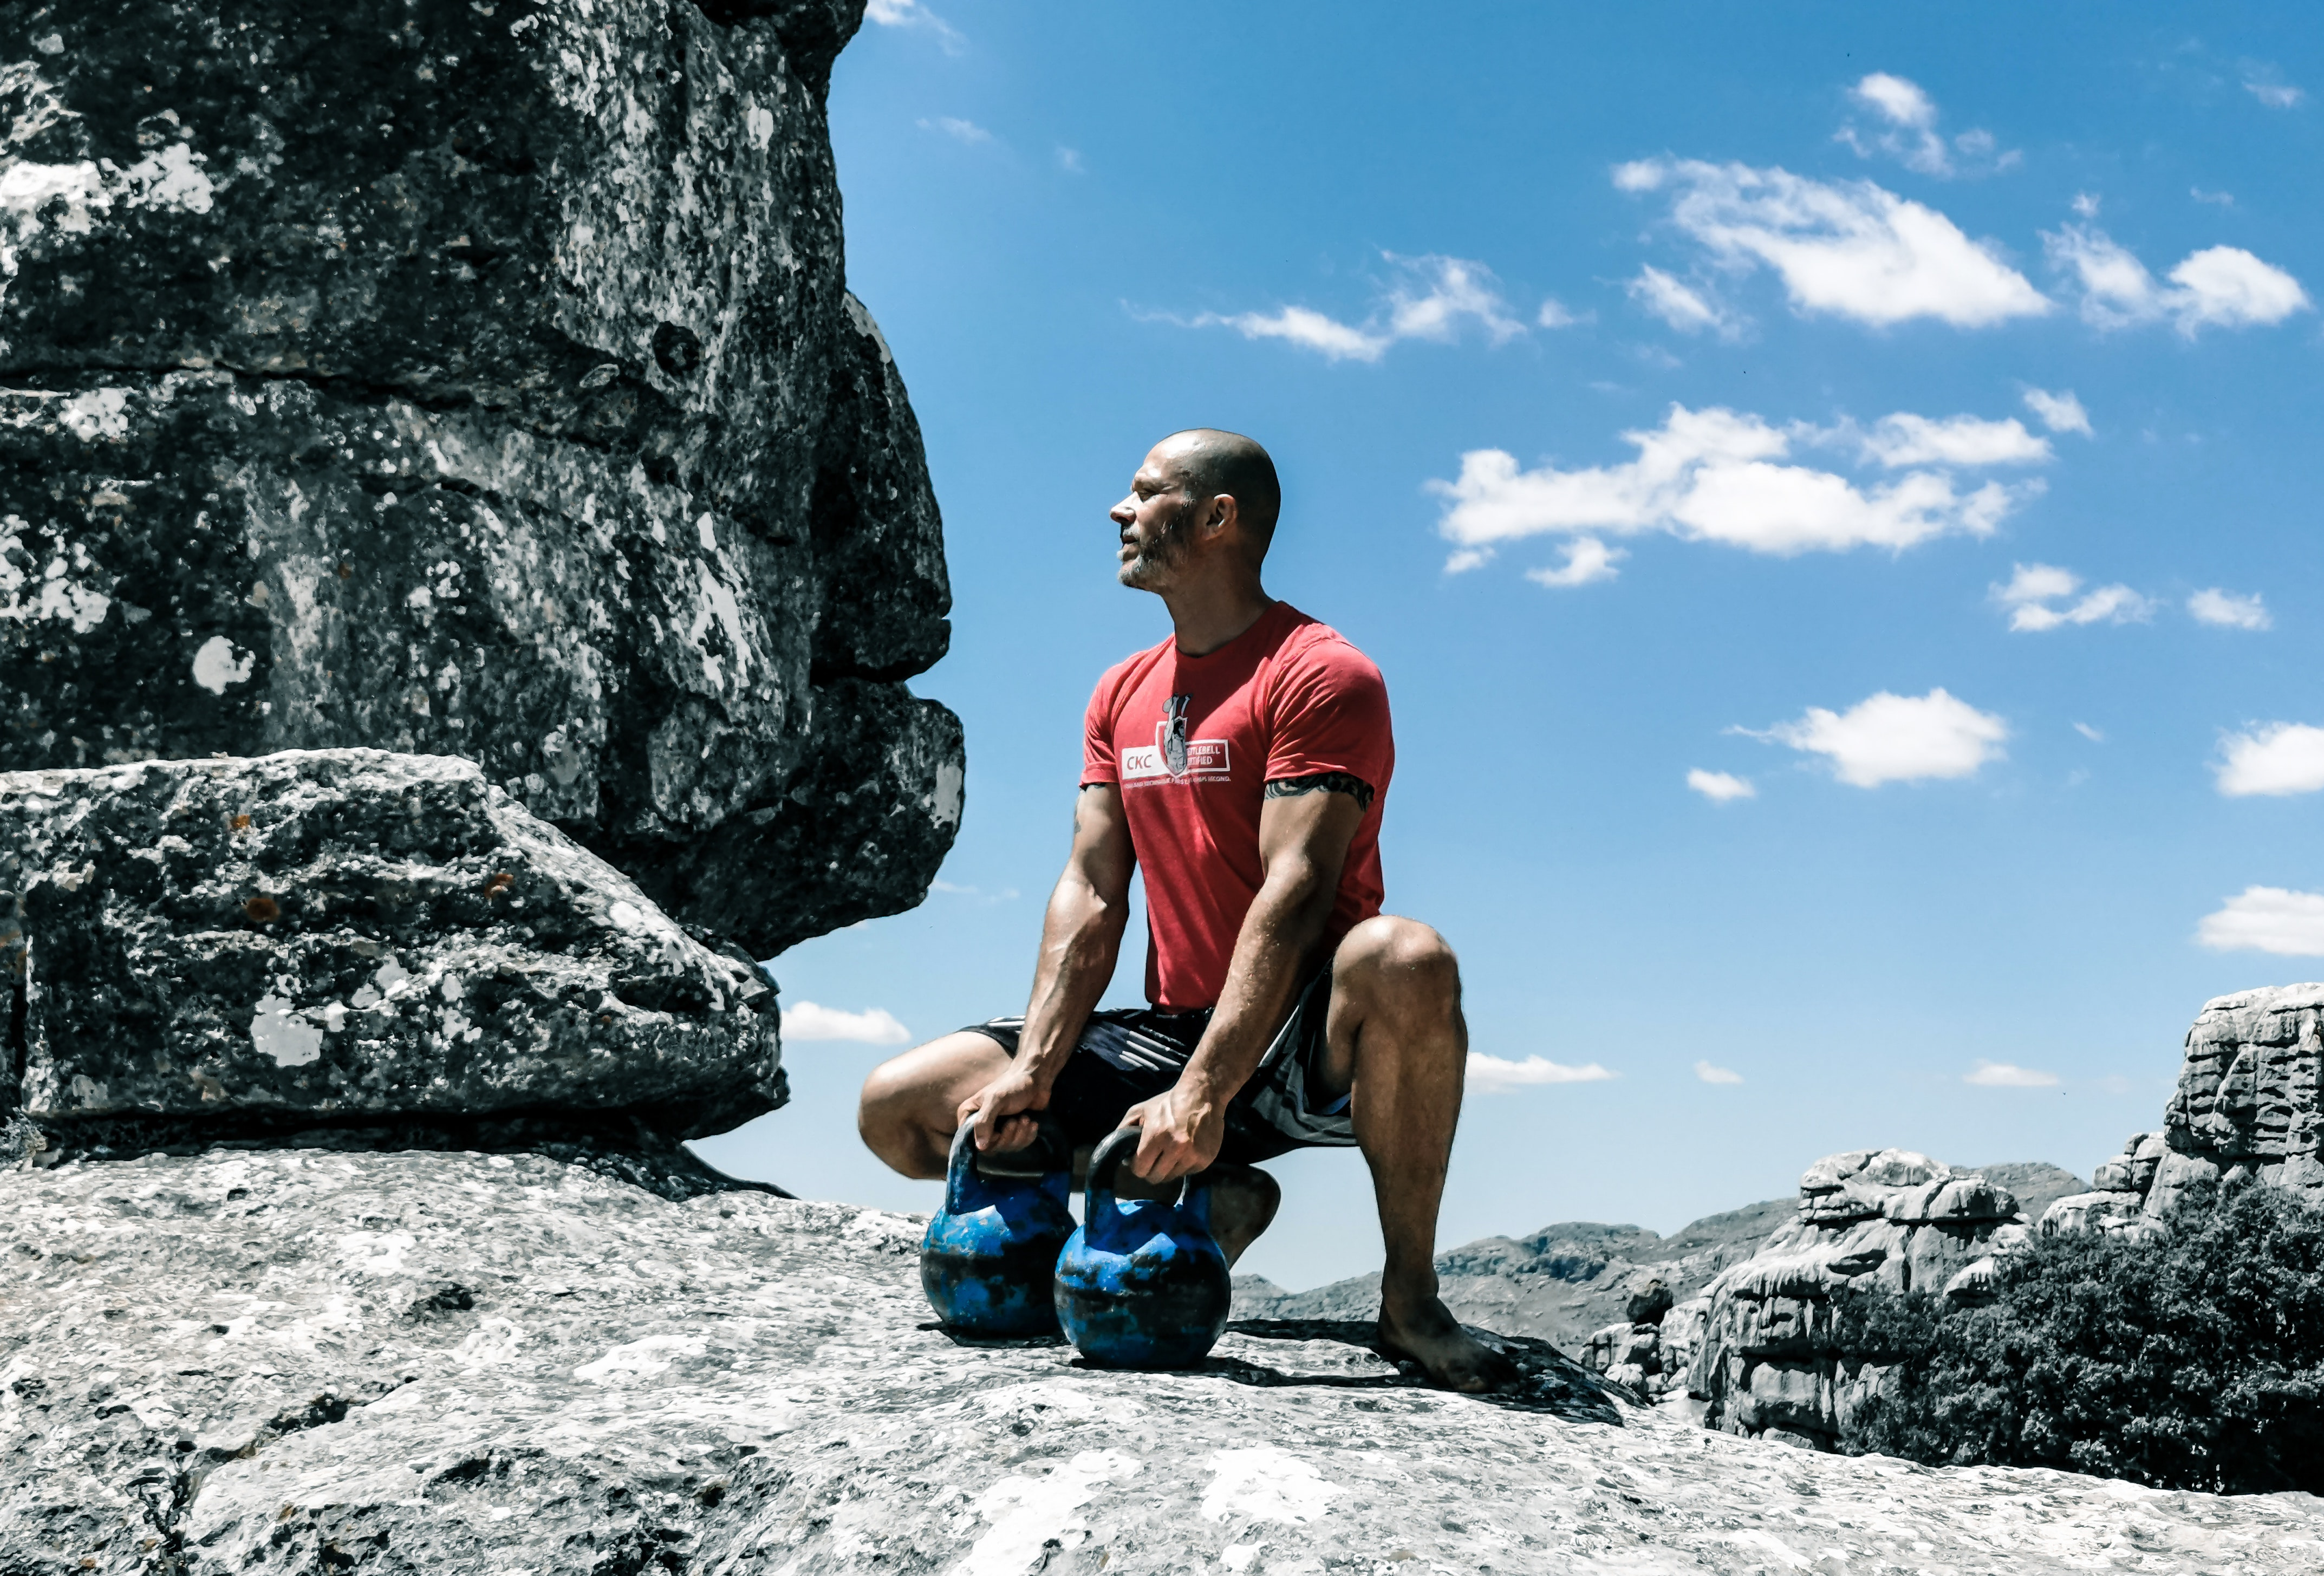 Man in red shirt squatting down on the edge of a cliff holding 2 blue kettle bell weights